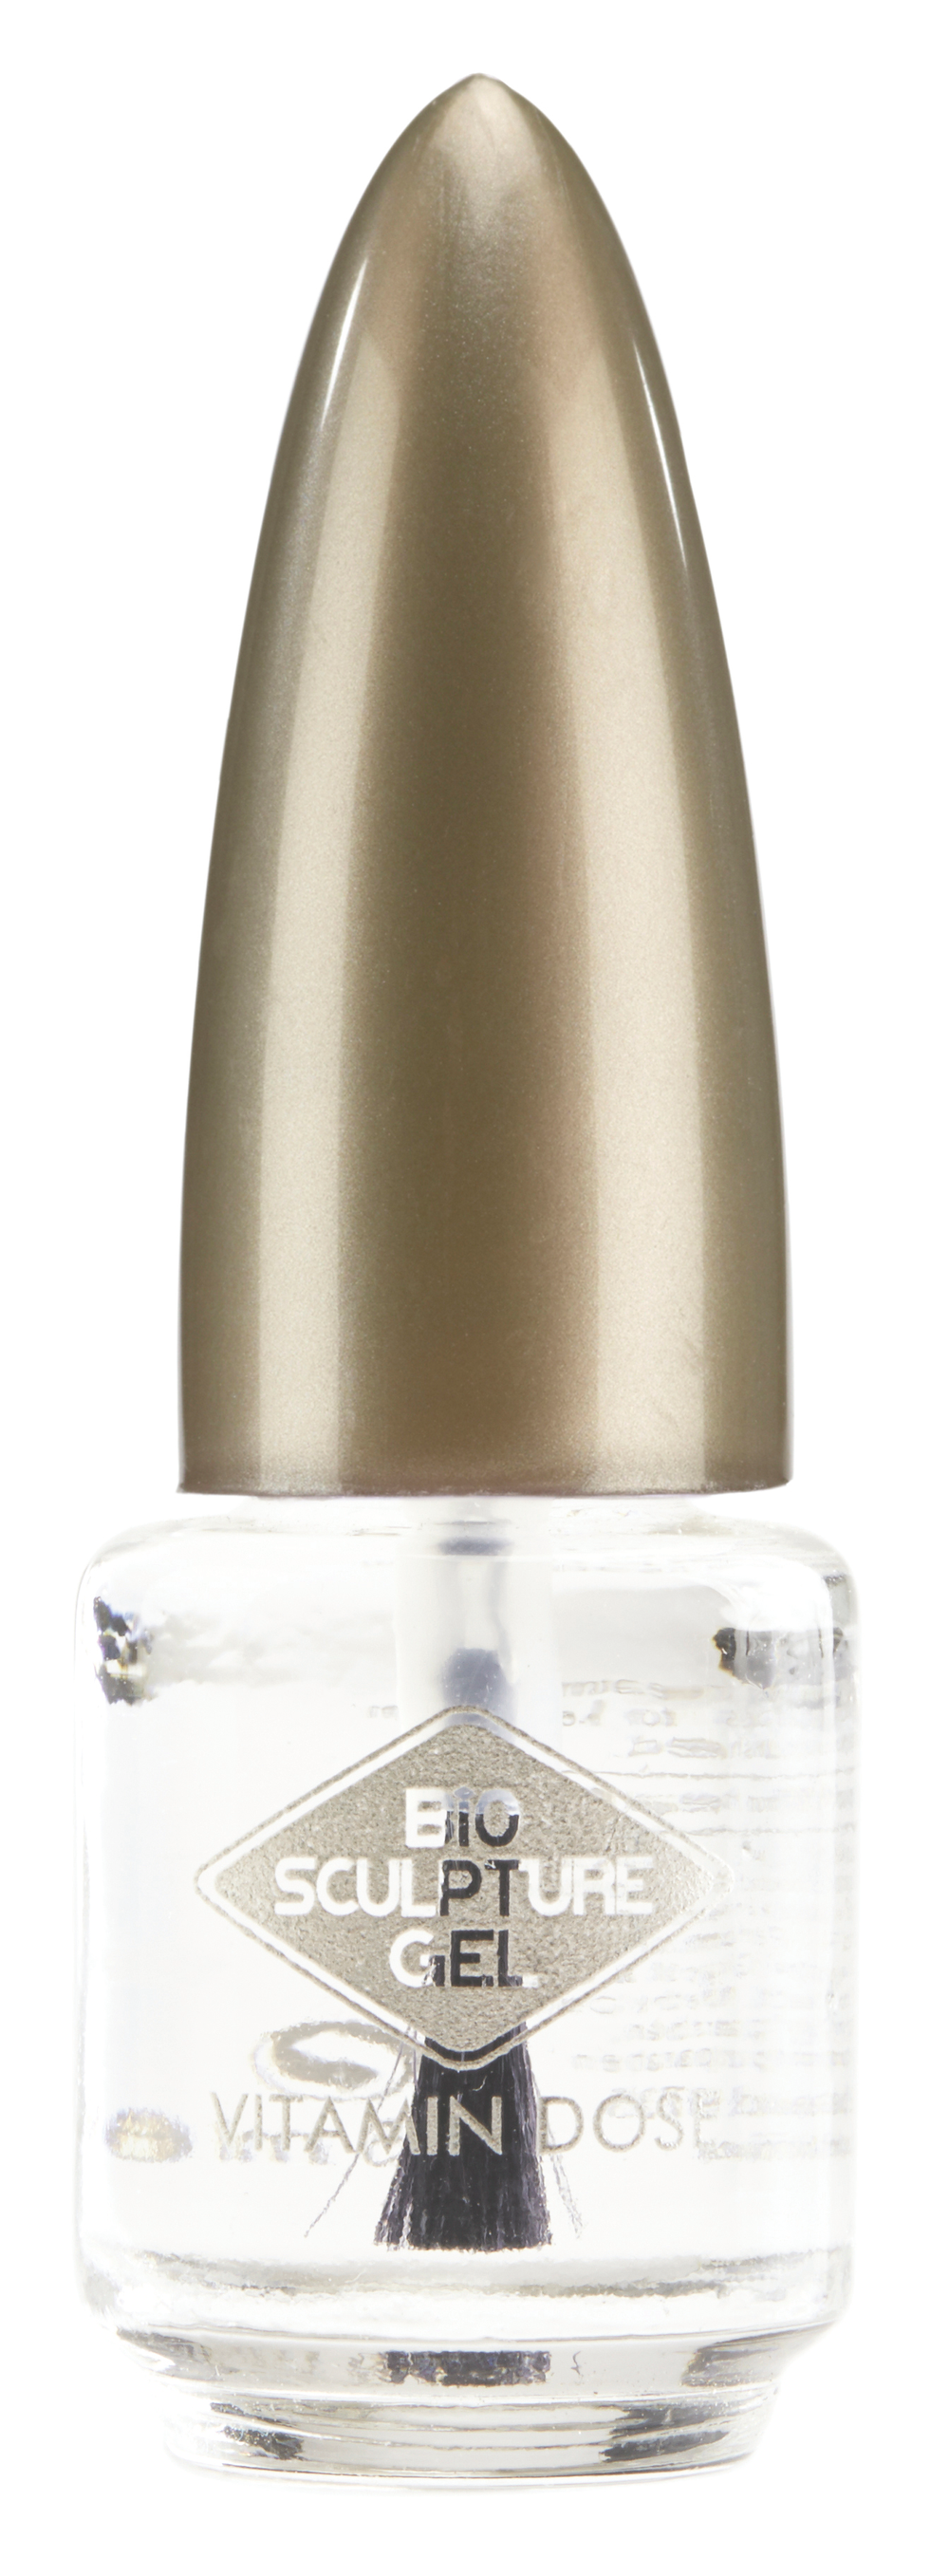 """<p>Bio Sculpture Gel Vitamin Dose features vitamins that are essential to the keratin structure and cell metabolism of natural nails. Simply use the brush-on applicator to apply the product around the nail and cuticle area, allow it to be absorbed, and continue with a spa manicure or gel treatment. The product will moisturize and strengthen natural nails.<br /><a href=""""http://www.biosculpturegel.com"""">www.biosculpturegel.com</a></p>"""